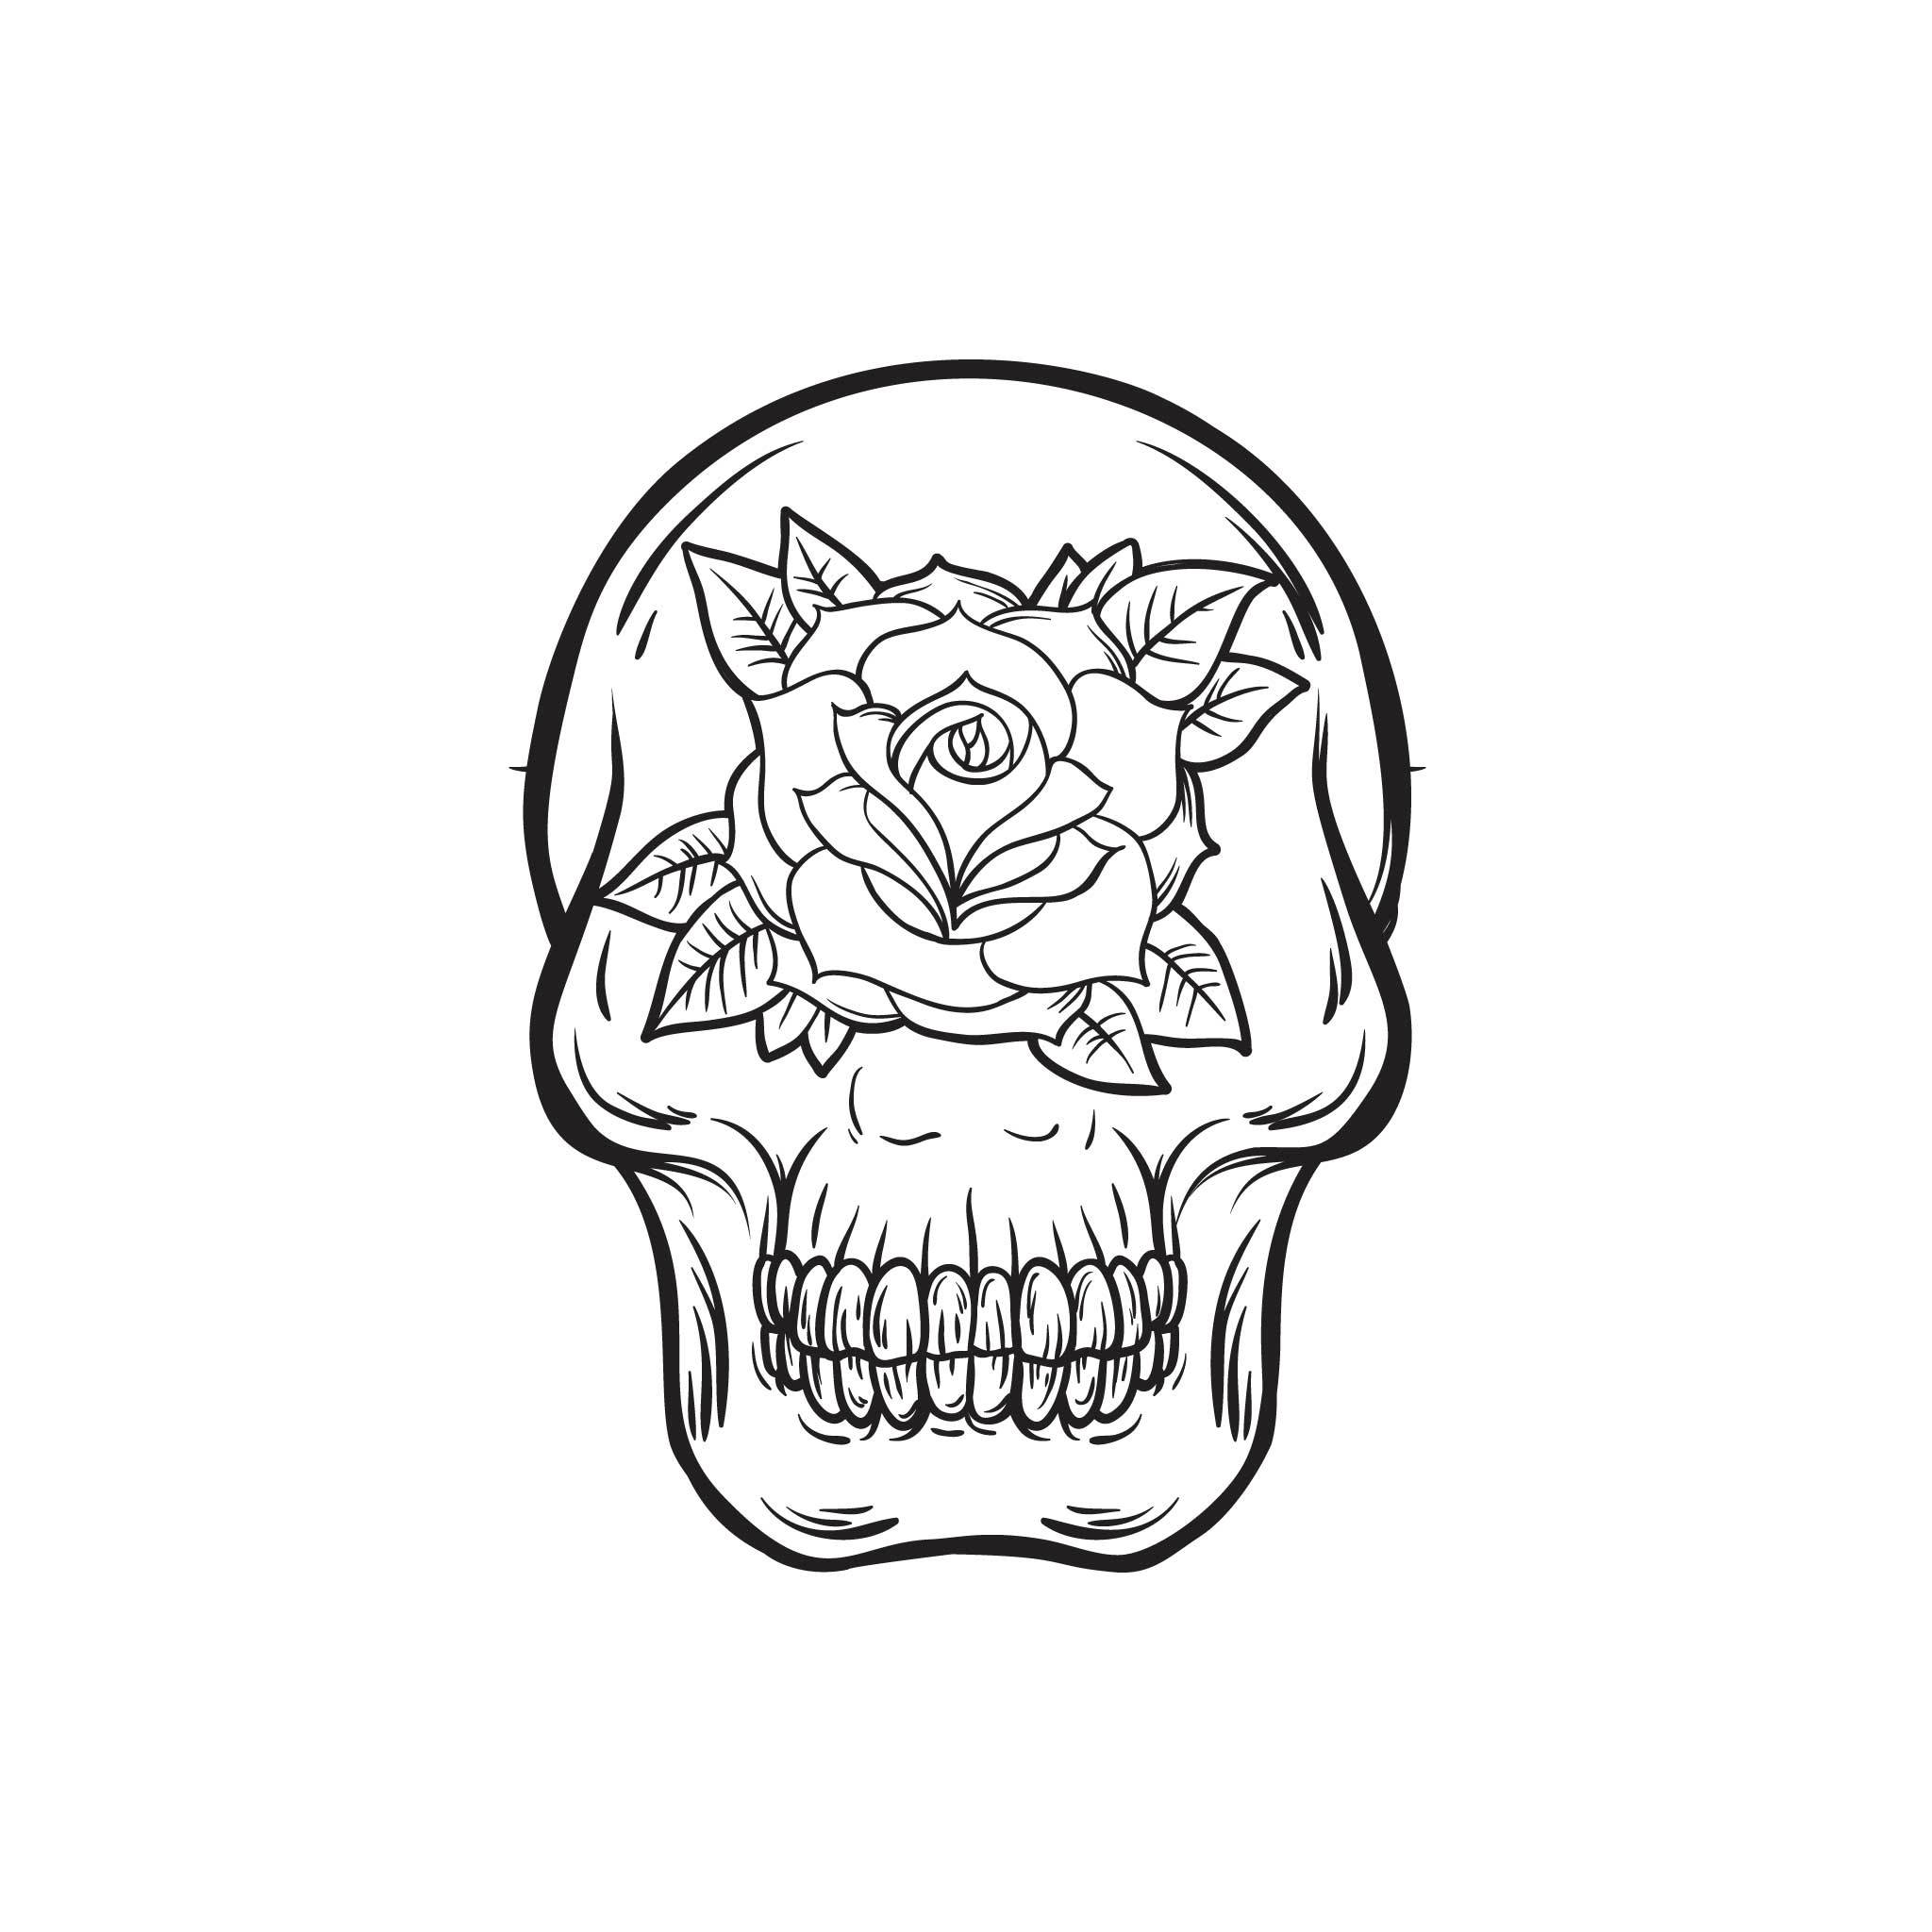 Skull and Rose Design InkDaze_JoseBorromeo